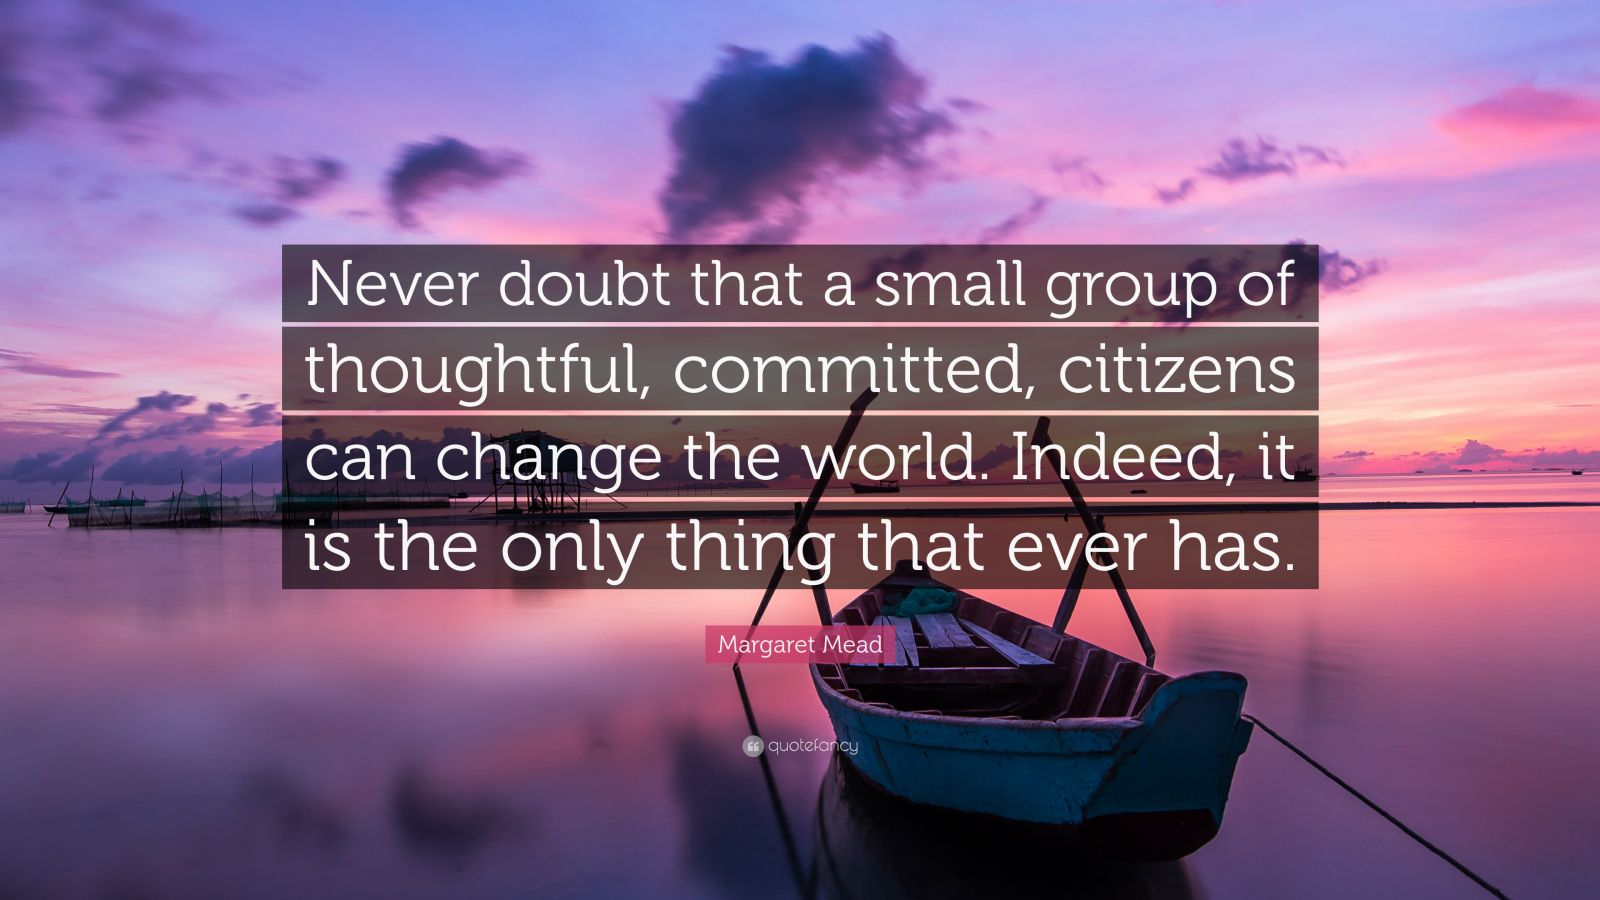 Steve Jobs Wallpaper Quotes Margaret Mead Quote Never Doubt That A Small Group Of